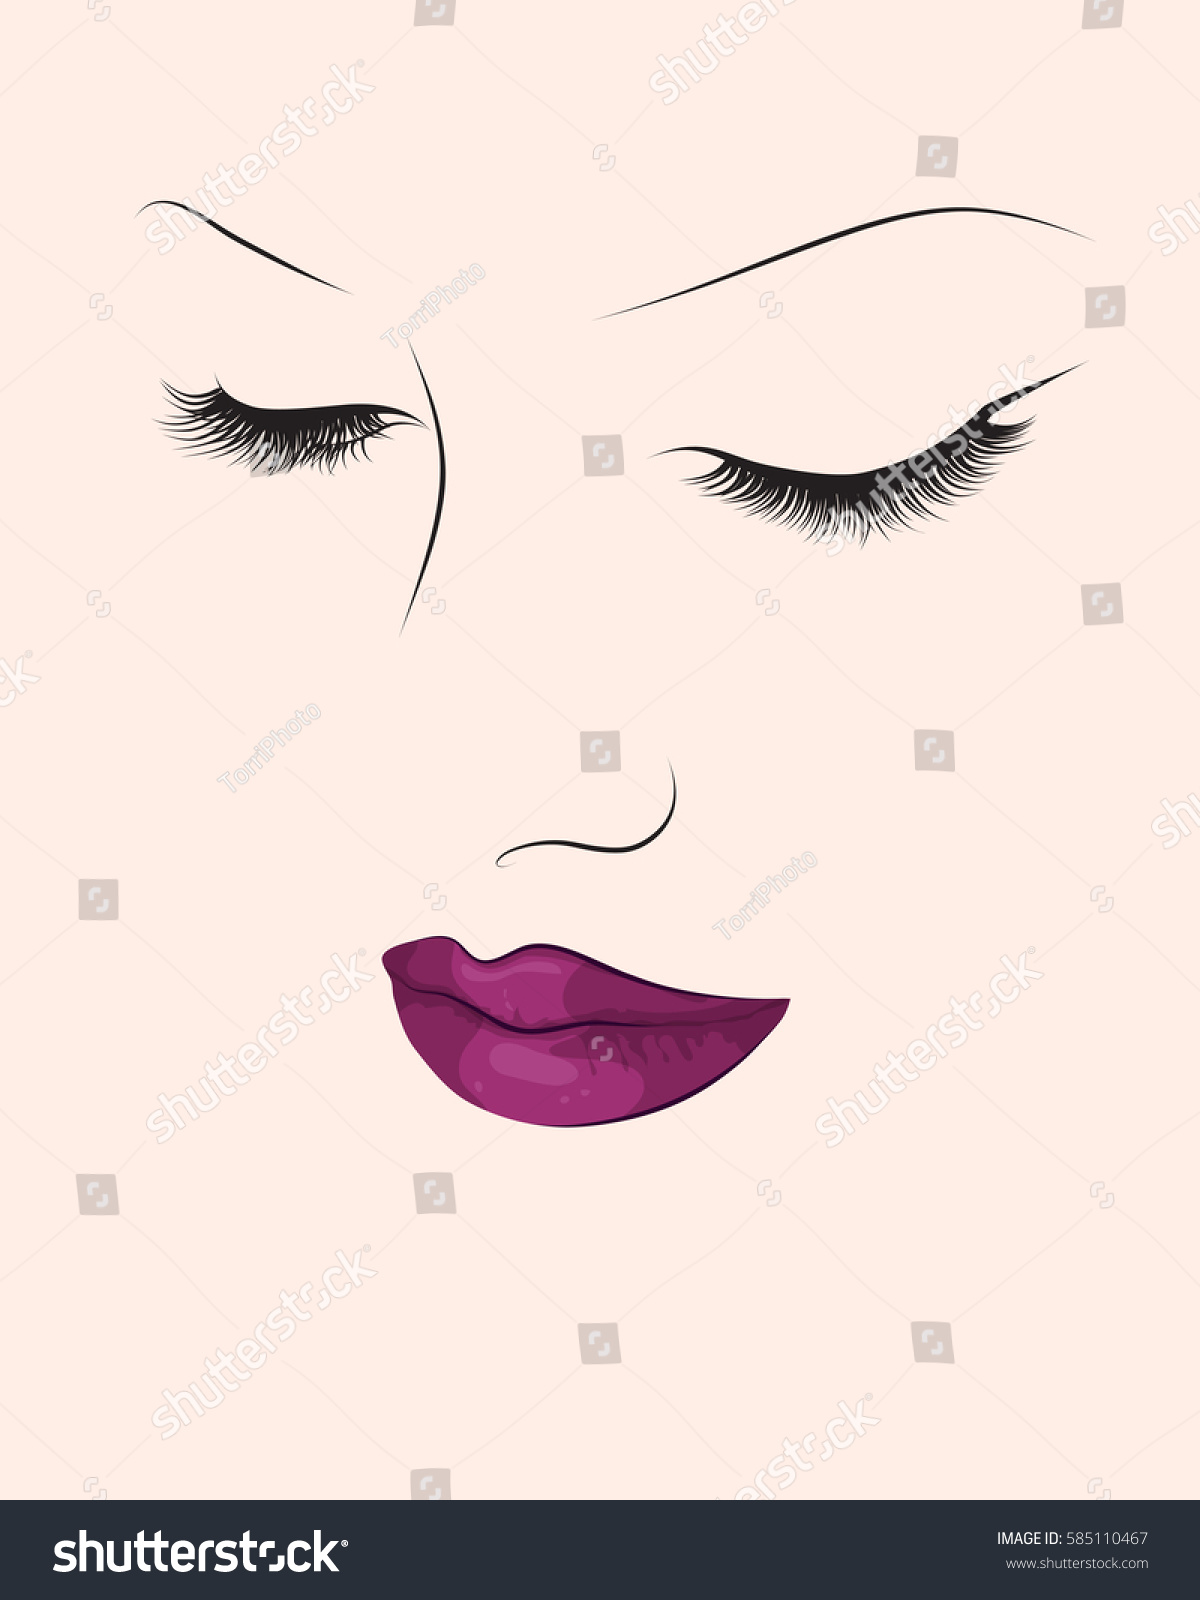 https://www.shutterstock.com/image-vector/make-fashion-portrait-abstract-colorful-woman-585110467